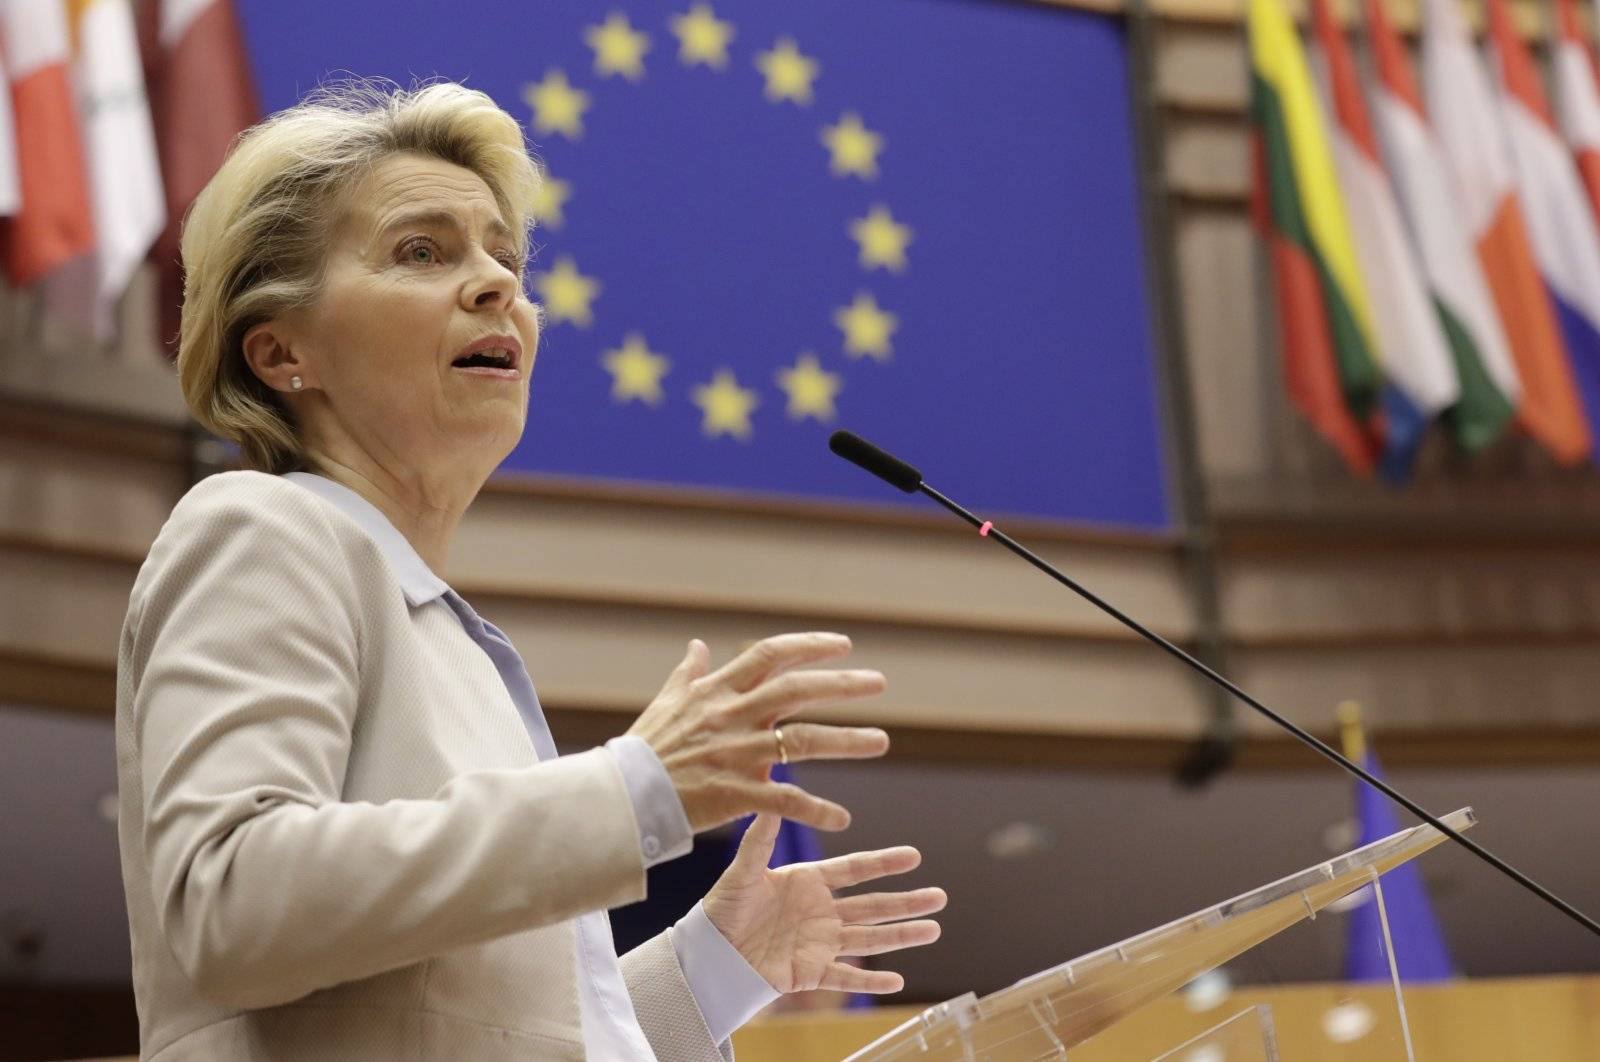 European Commission President Ursula von der Leyen speaks during a plenary session at the European Parliament in Brussels, Nov. 25, 2020. (AP Photo)